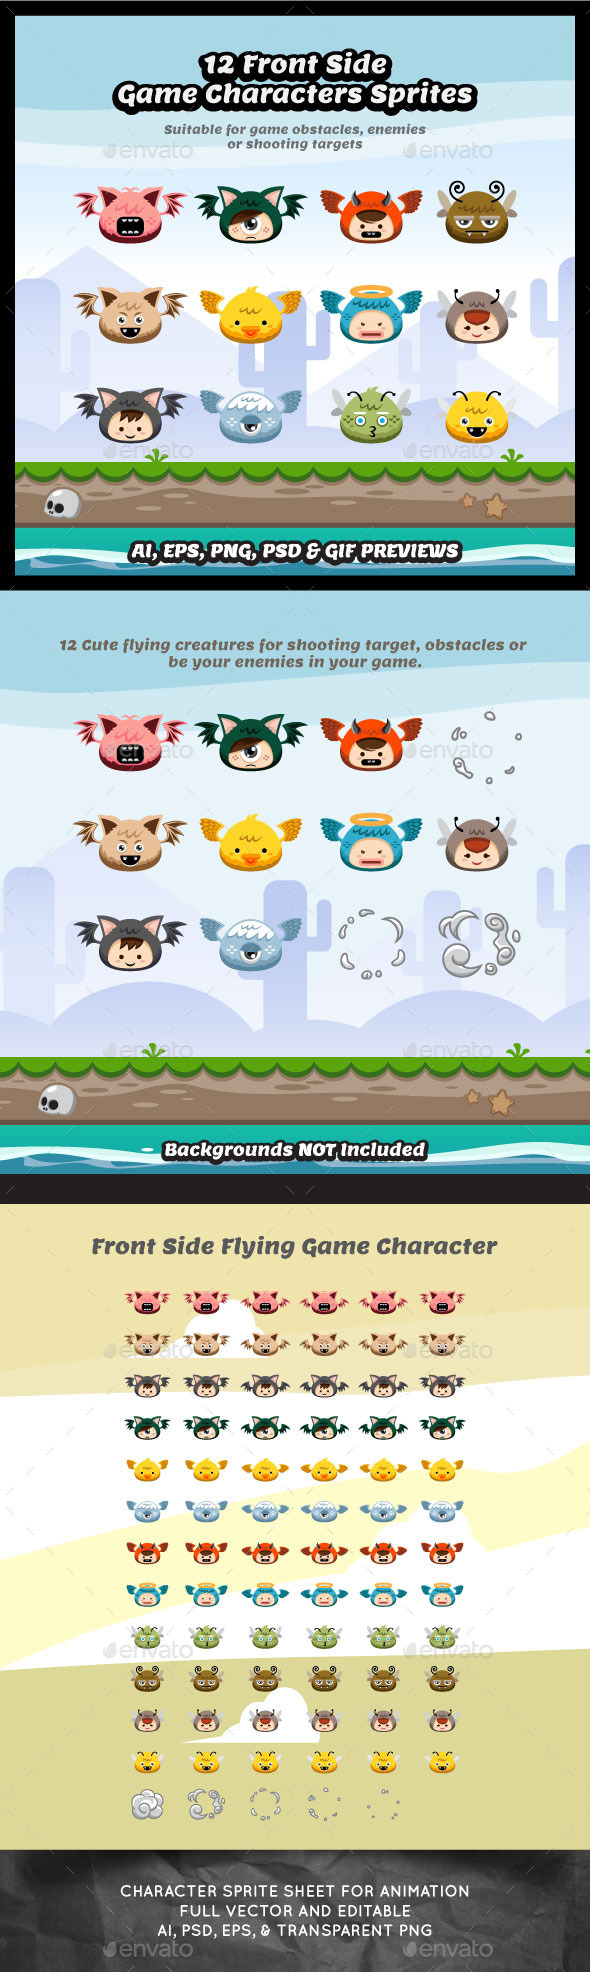 12 Front Side Flying Character Sprite Sheets - Sprites Game Assets